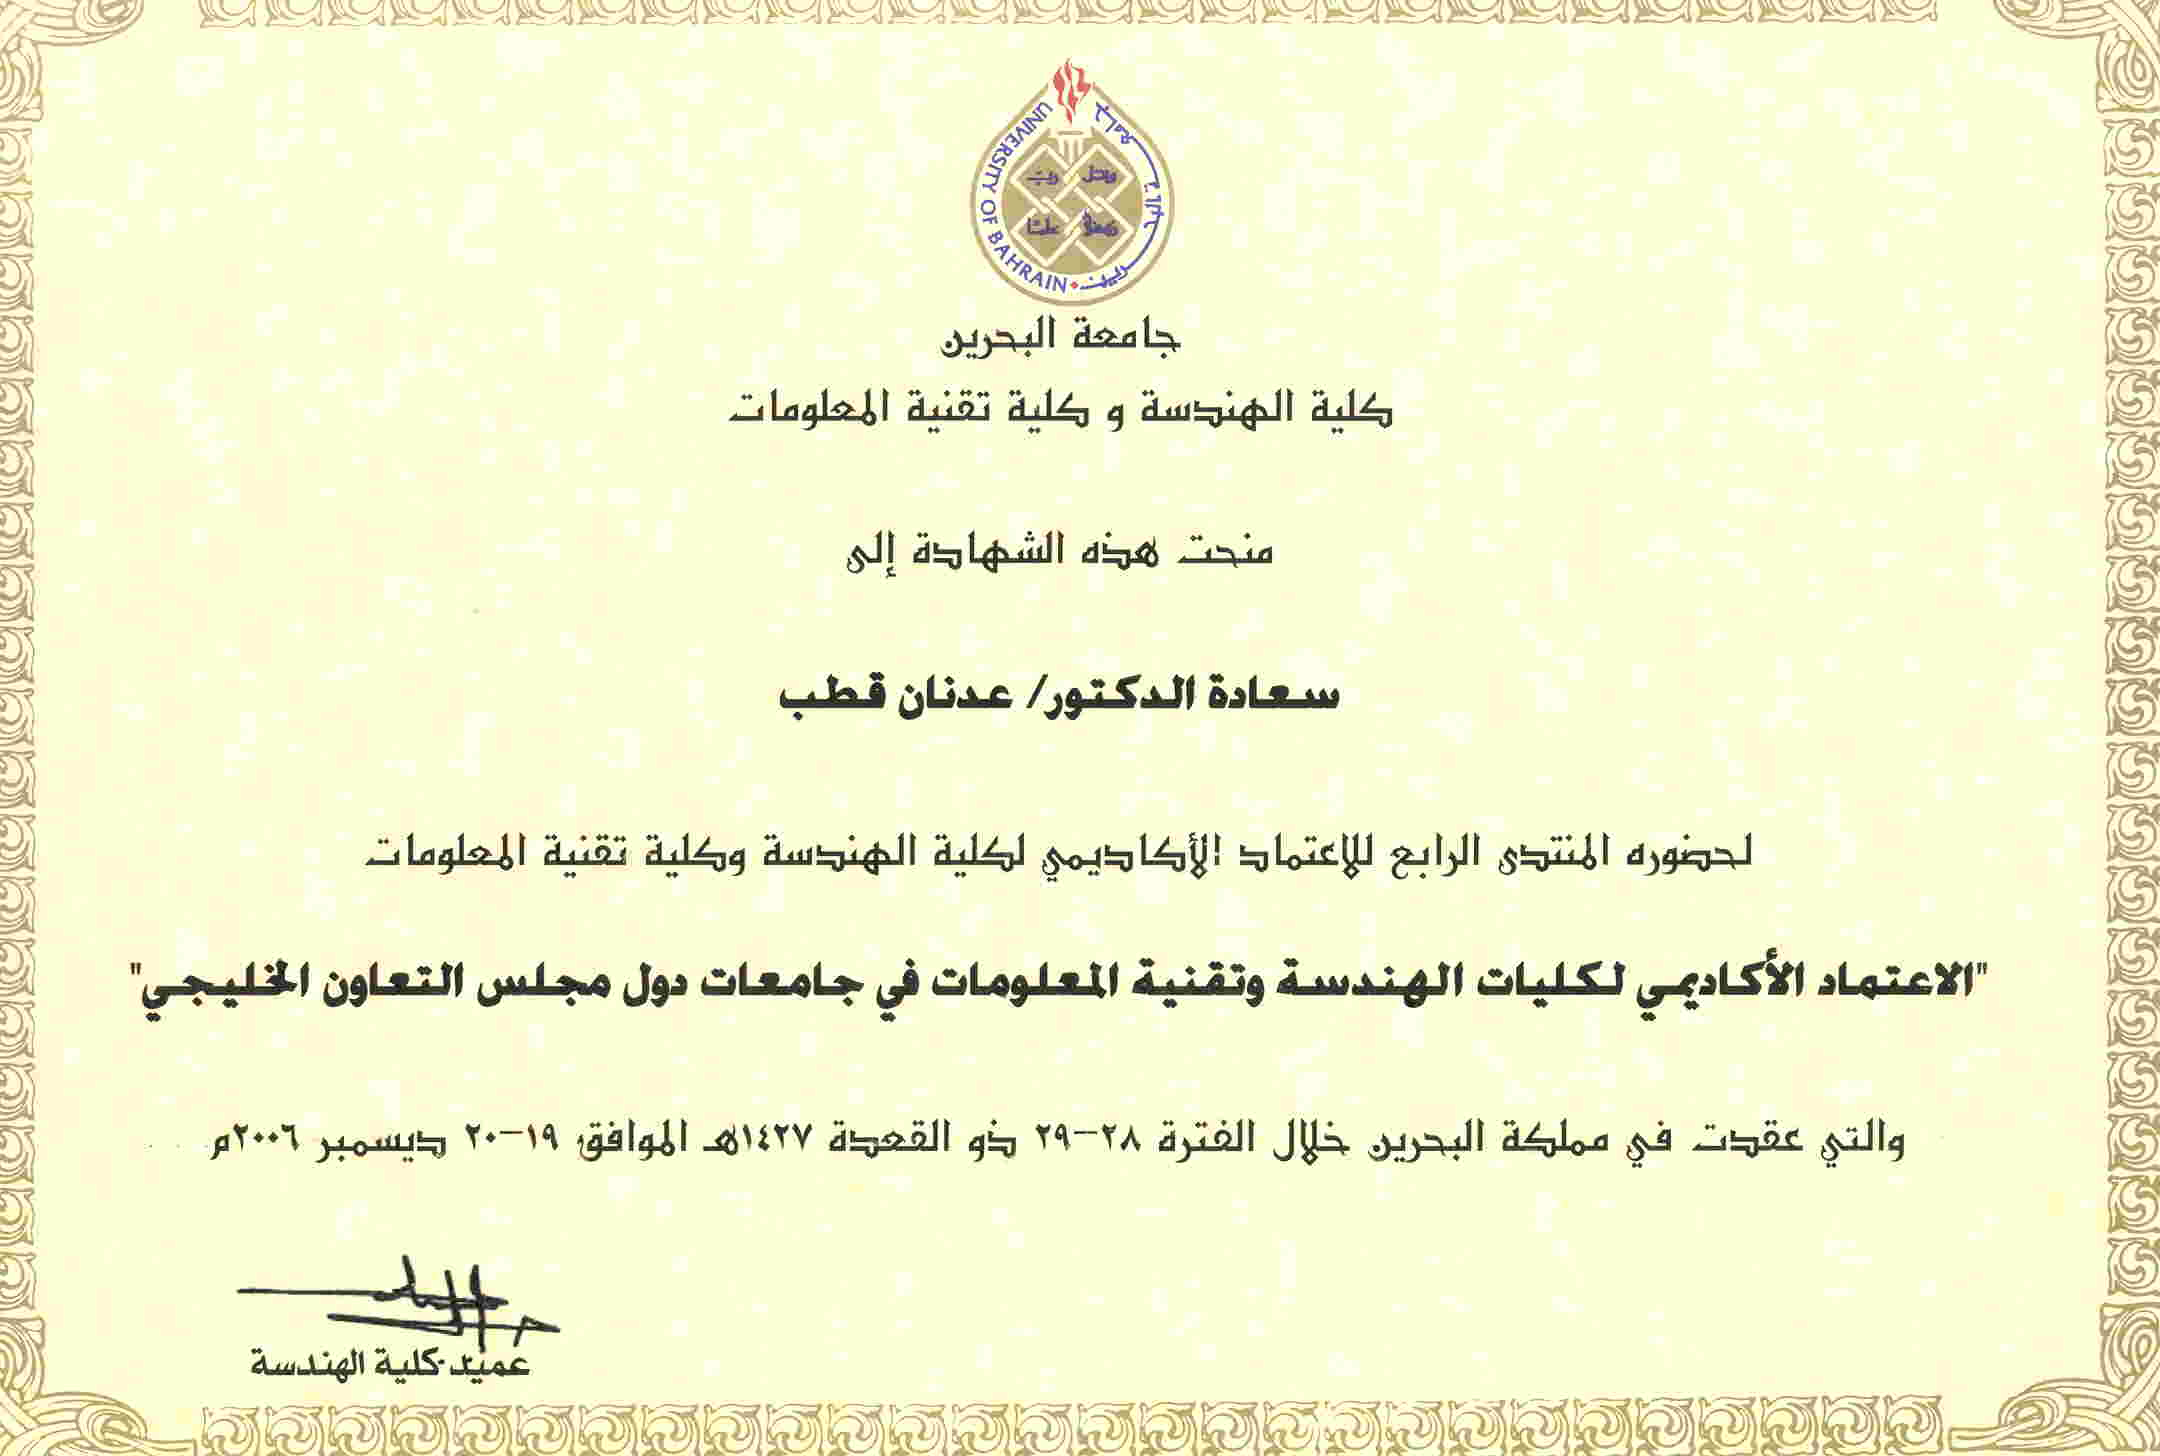 Dr adnan gutub resume forum of the arabian gulf cooperation council engineering colleges focused on accreditation university of bahrain 19 20 december 2006 certificate xflitez Gallery